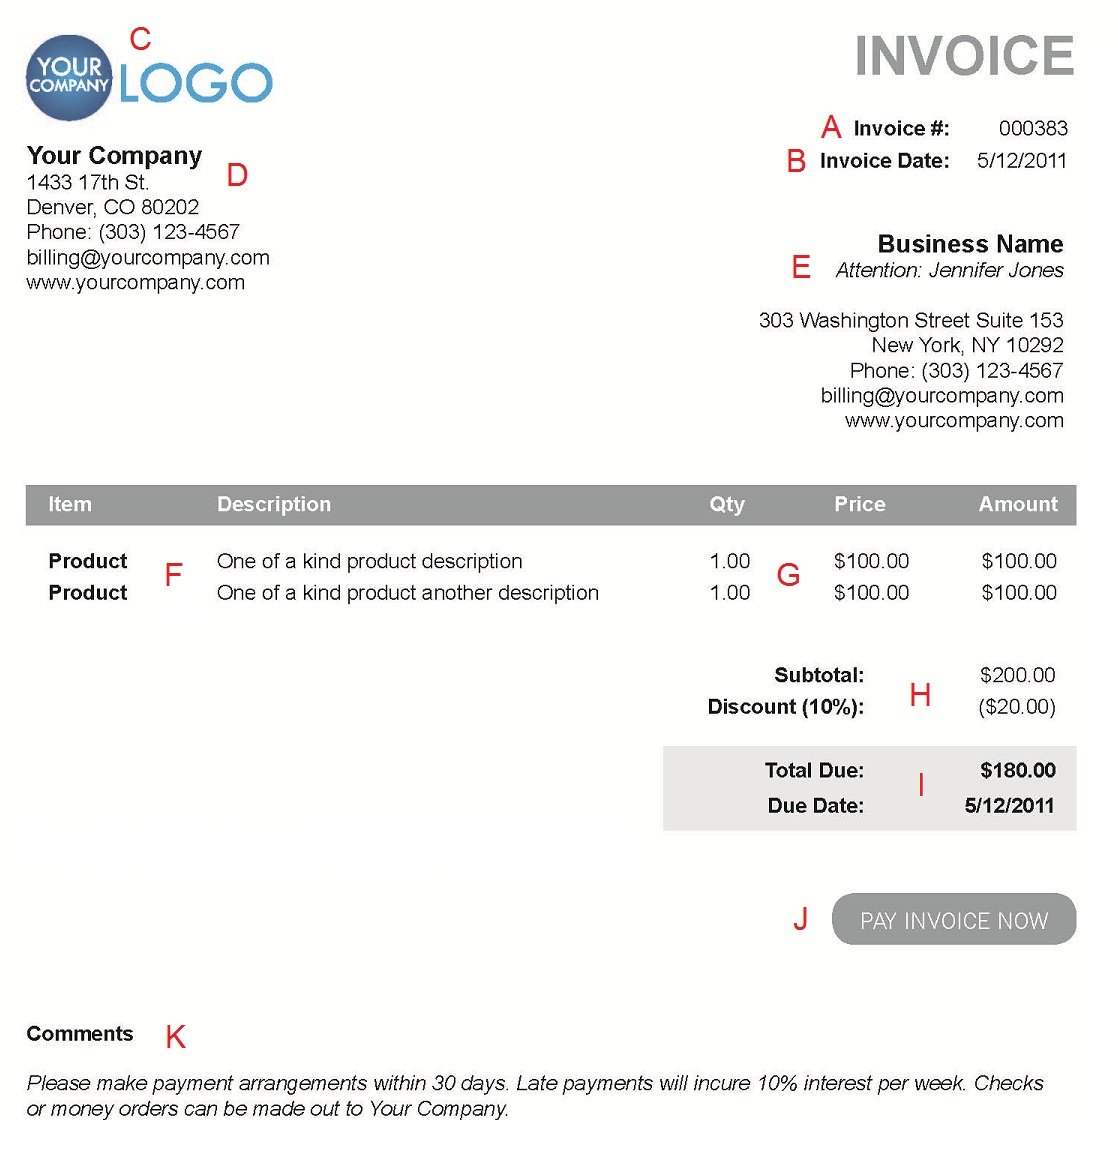 Coolmathgamesus  Wonderful The  Different Sections Of An Electronic Payment Invoice With Fair A  With Easy On The Eye Acura Rdx Invoice Price Also Web Development Invoice Template In Addition Official Invoice Template And Invoice For Word As Well As Invoice Price On Car Additionally Paypal Fee Invoice From Paysimplecom With Coolmathgamesus  Fair The  Different Sections Of An Electronic Payment Invoice With Easy On The Eye A  And Wonderful Acura Rdx Invoice Price Also Web Development Invoice Template In Addition Official Invoice Template From Paysimplecom